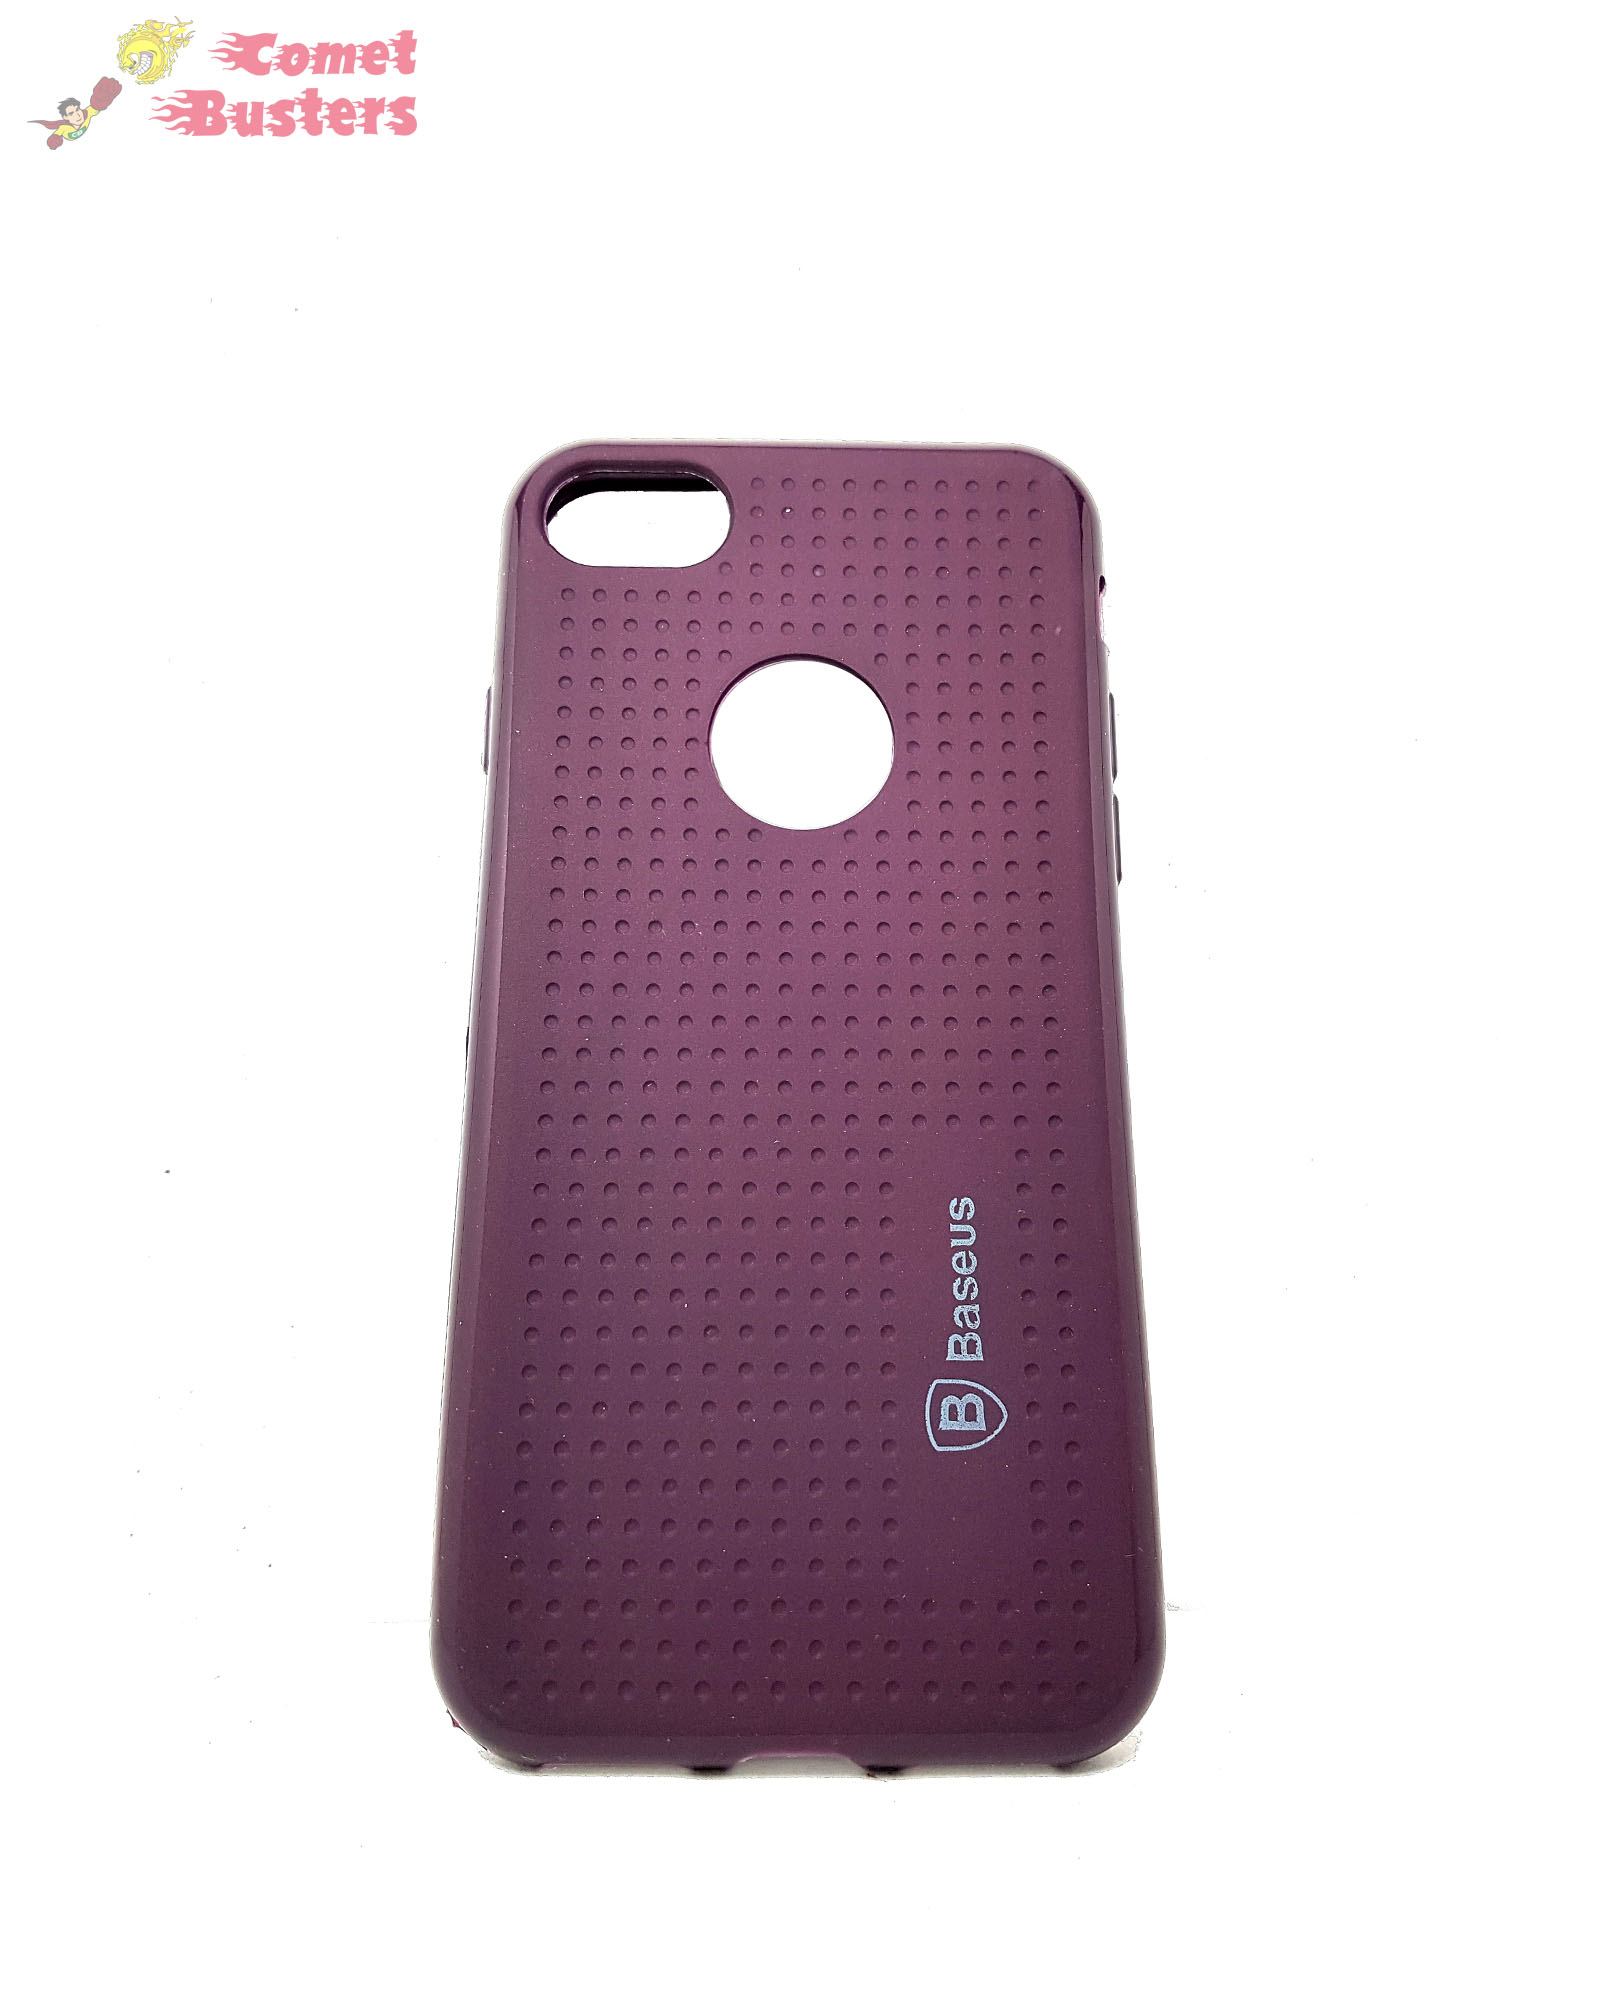 Apple iPhone 7 Back Cover Case | Purple |